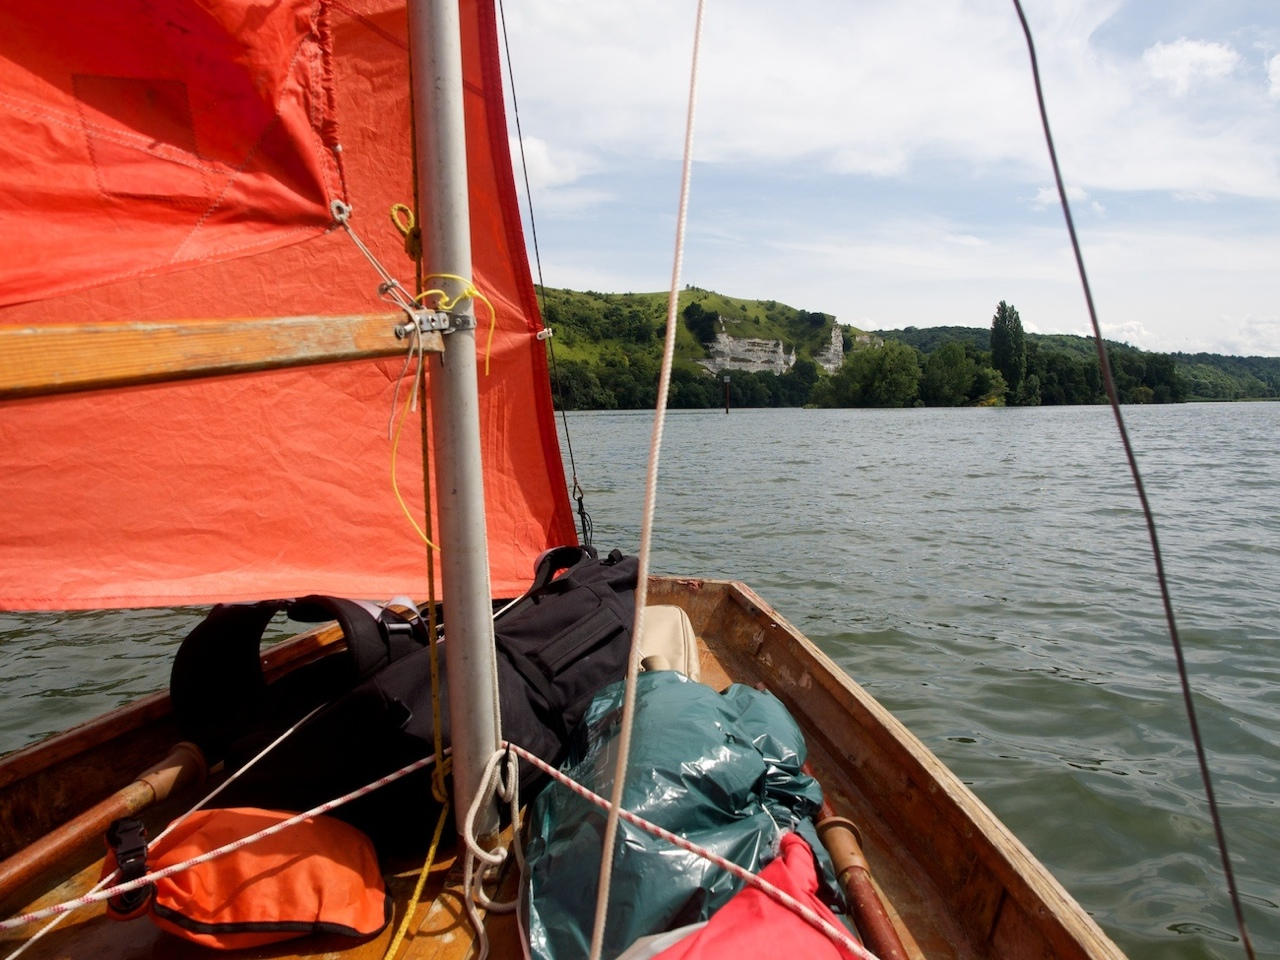 The river Seine in France viewed from the cockpit of a Mirror dinghy under sail